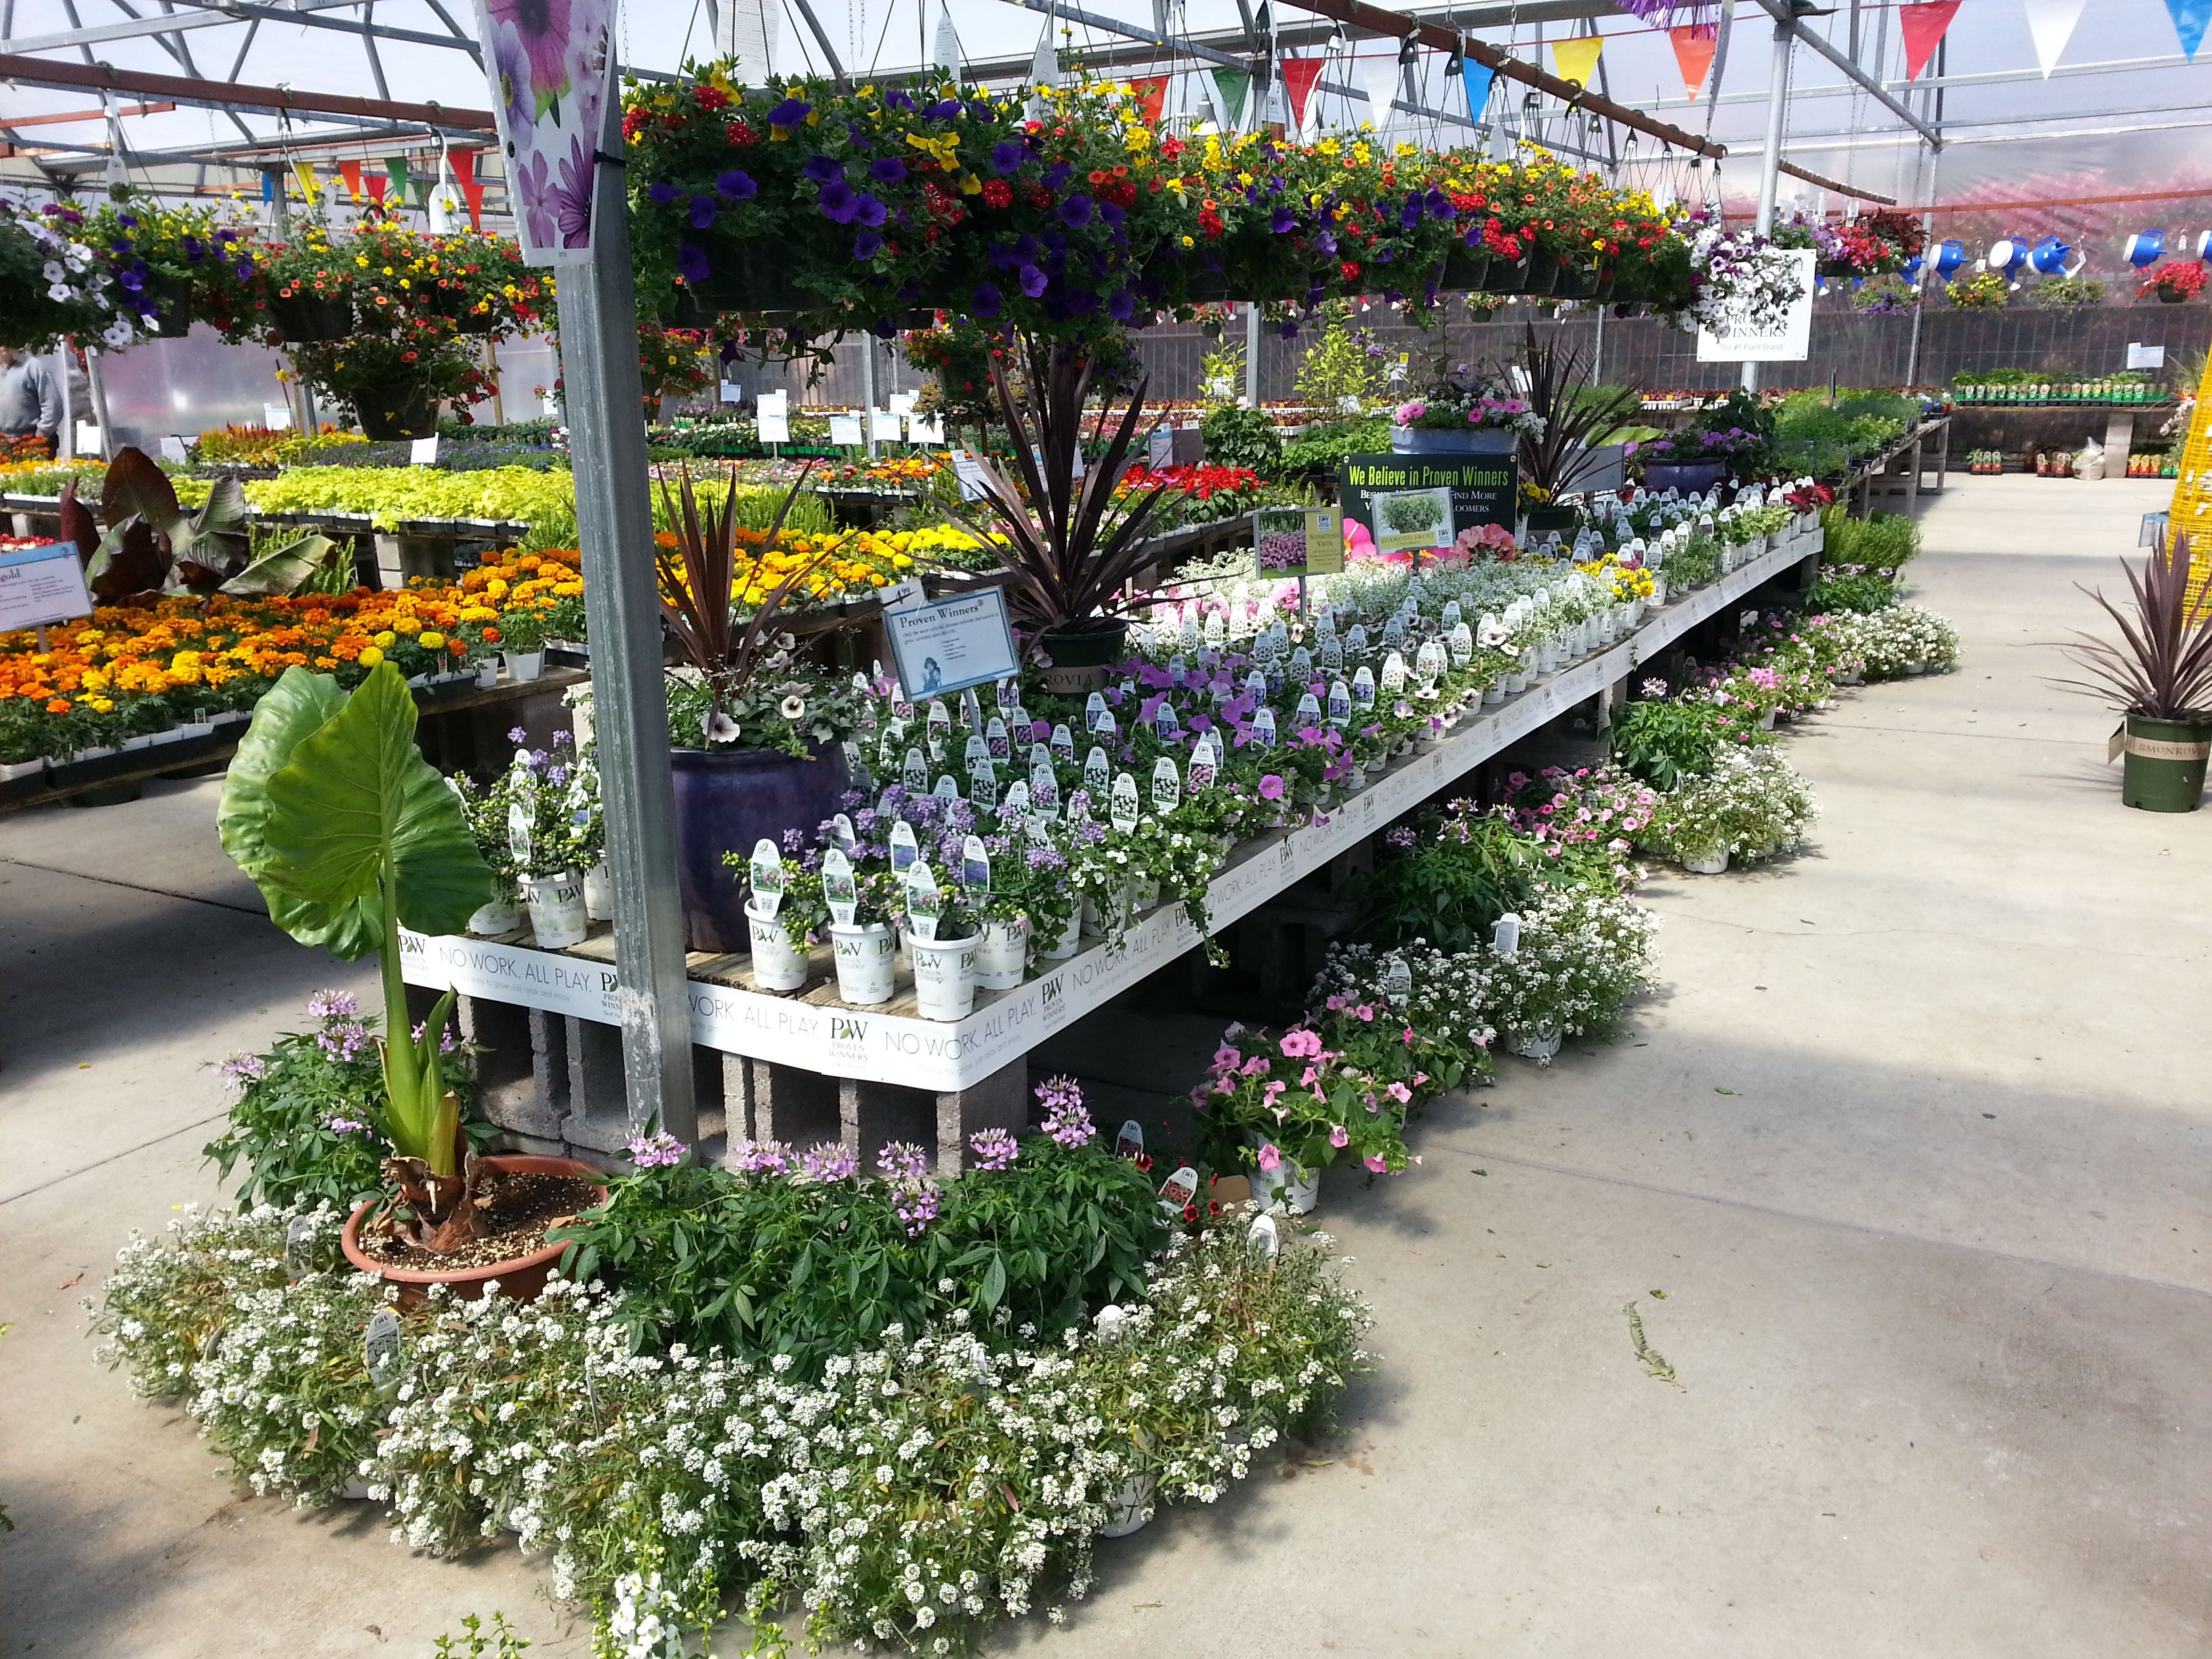 Proven Winners at Calloway's Nursery in Plano on Custer